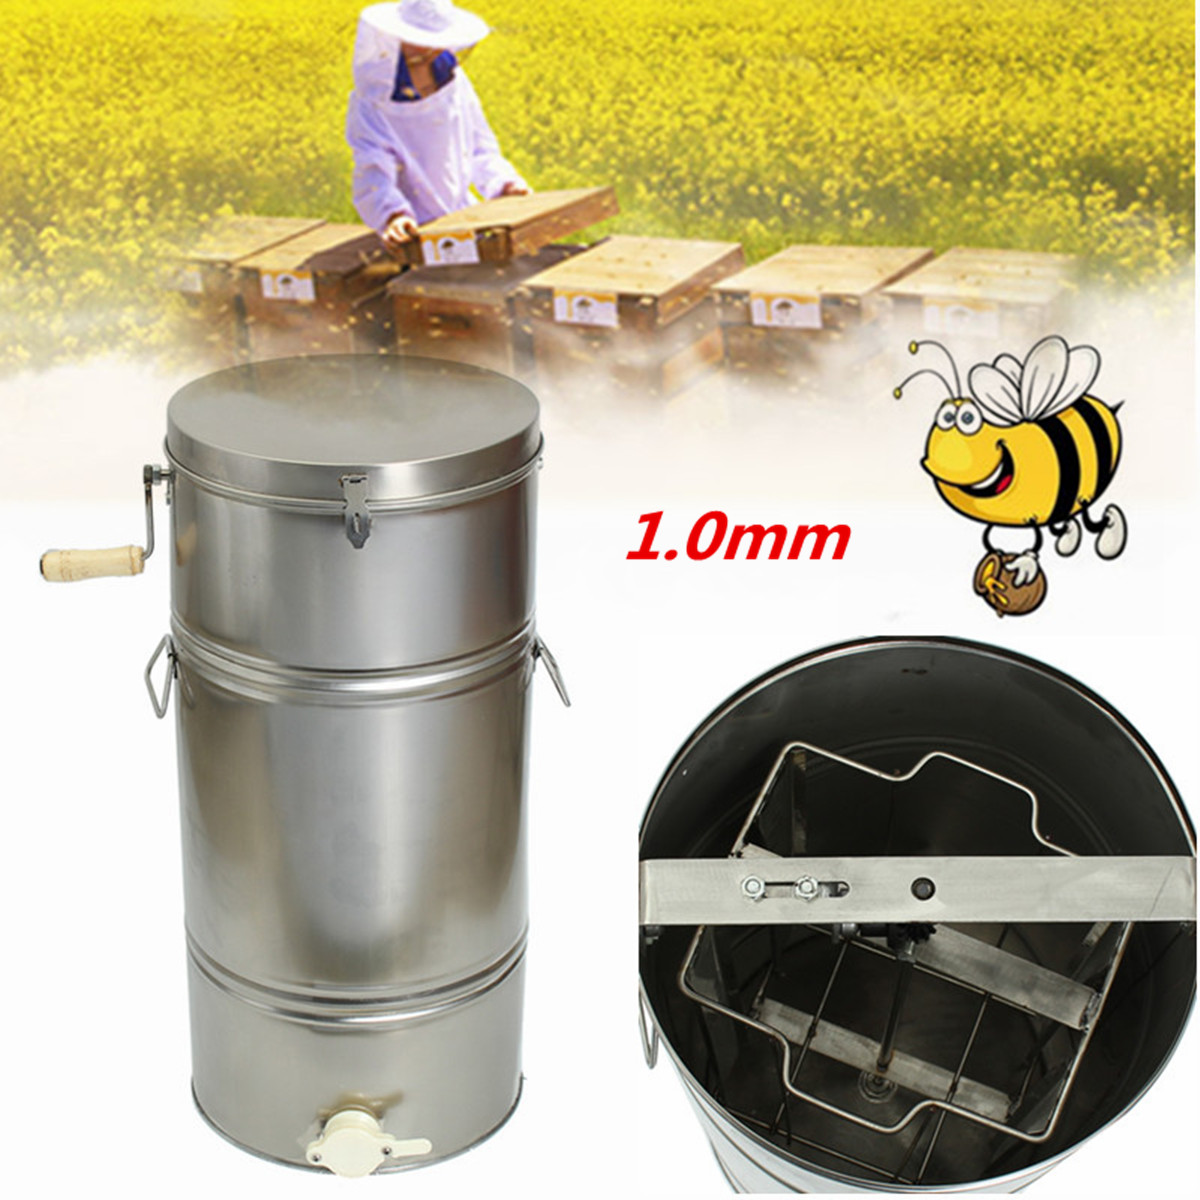 Honey Extractor Two 2 Frame Stainless Steel Manual Honey Extractor Honeycomb Beekeeping Spinner Tank Equipment SuppliesHoney Extractor Two 2 Frame Stainless Steel Manual Honey Extractor Honeycomb Beekeeping Spinner Tank Equipment Supplies